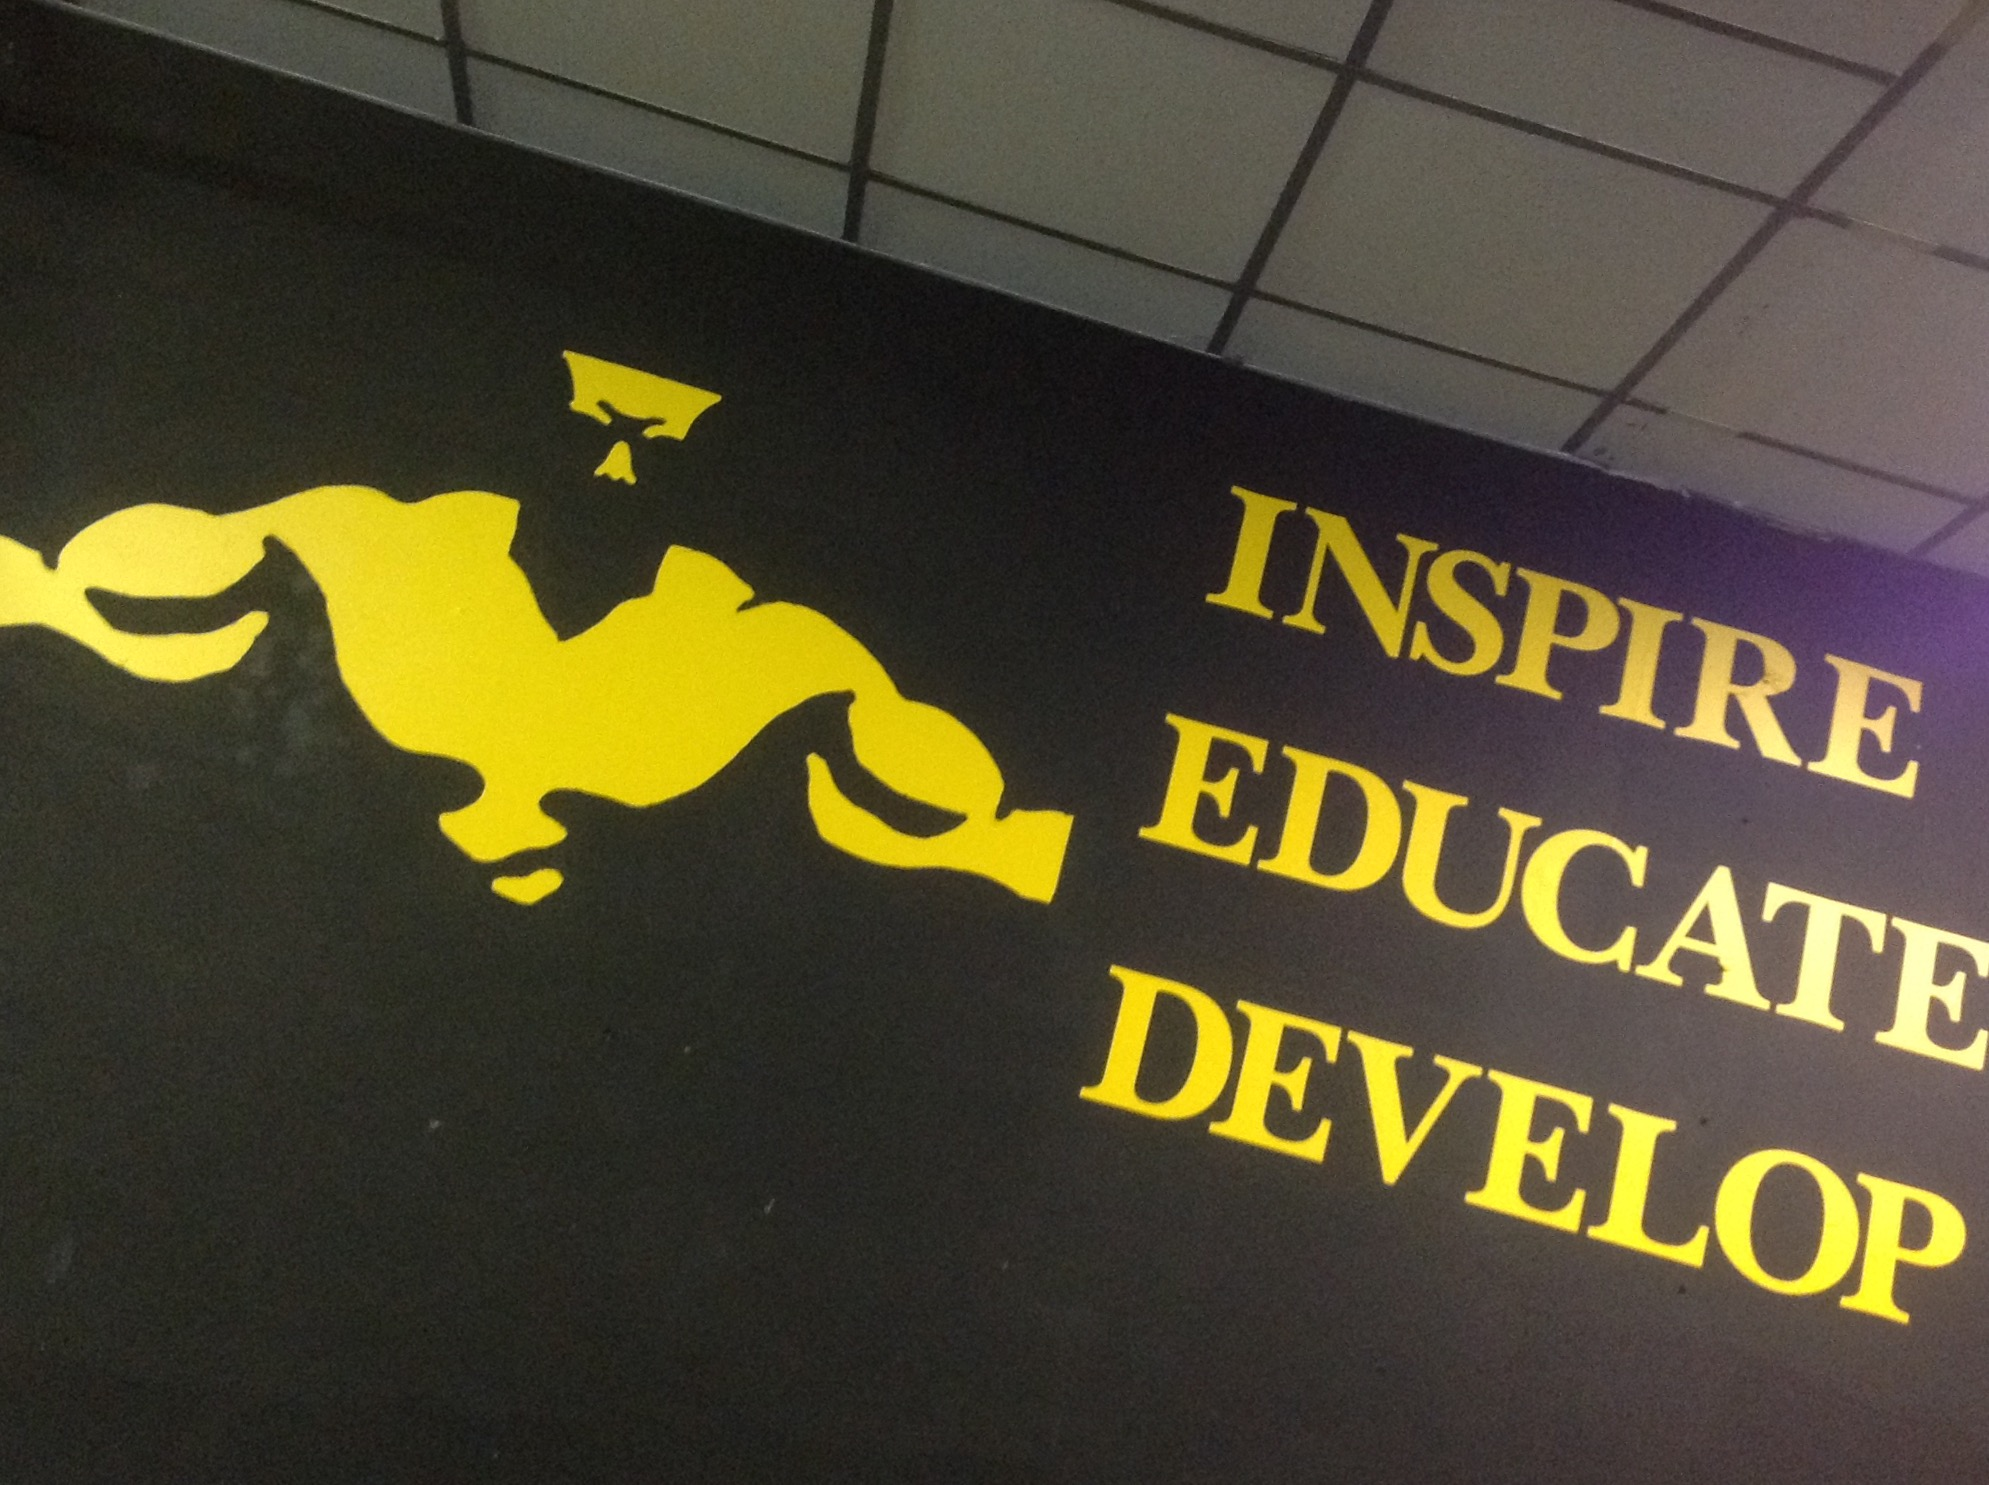 Inspire - Educate - Develop